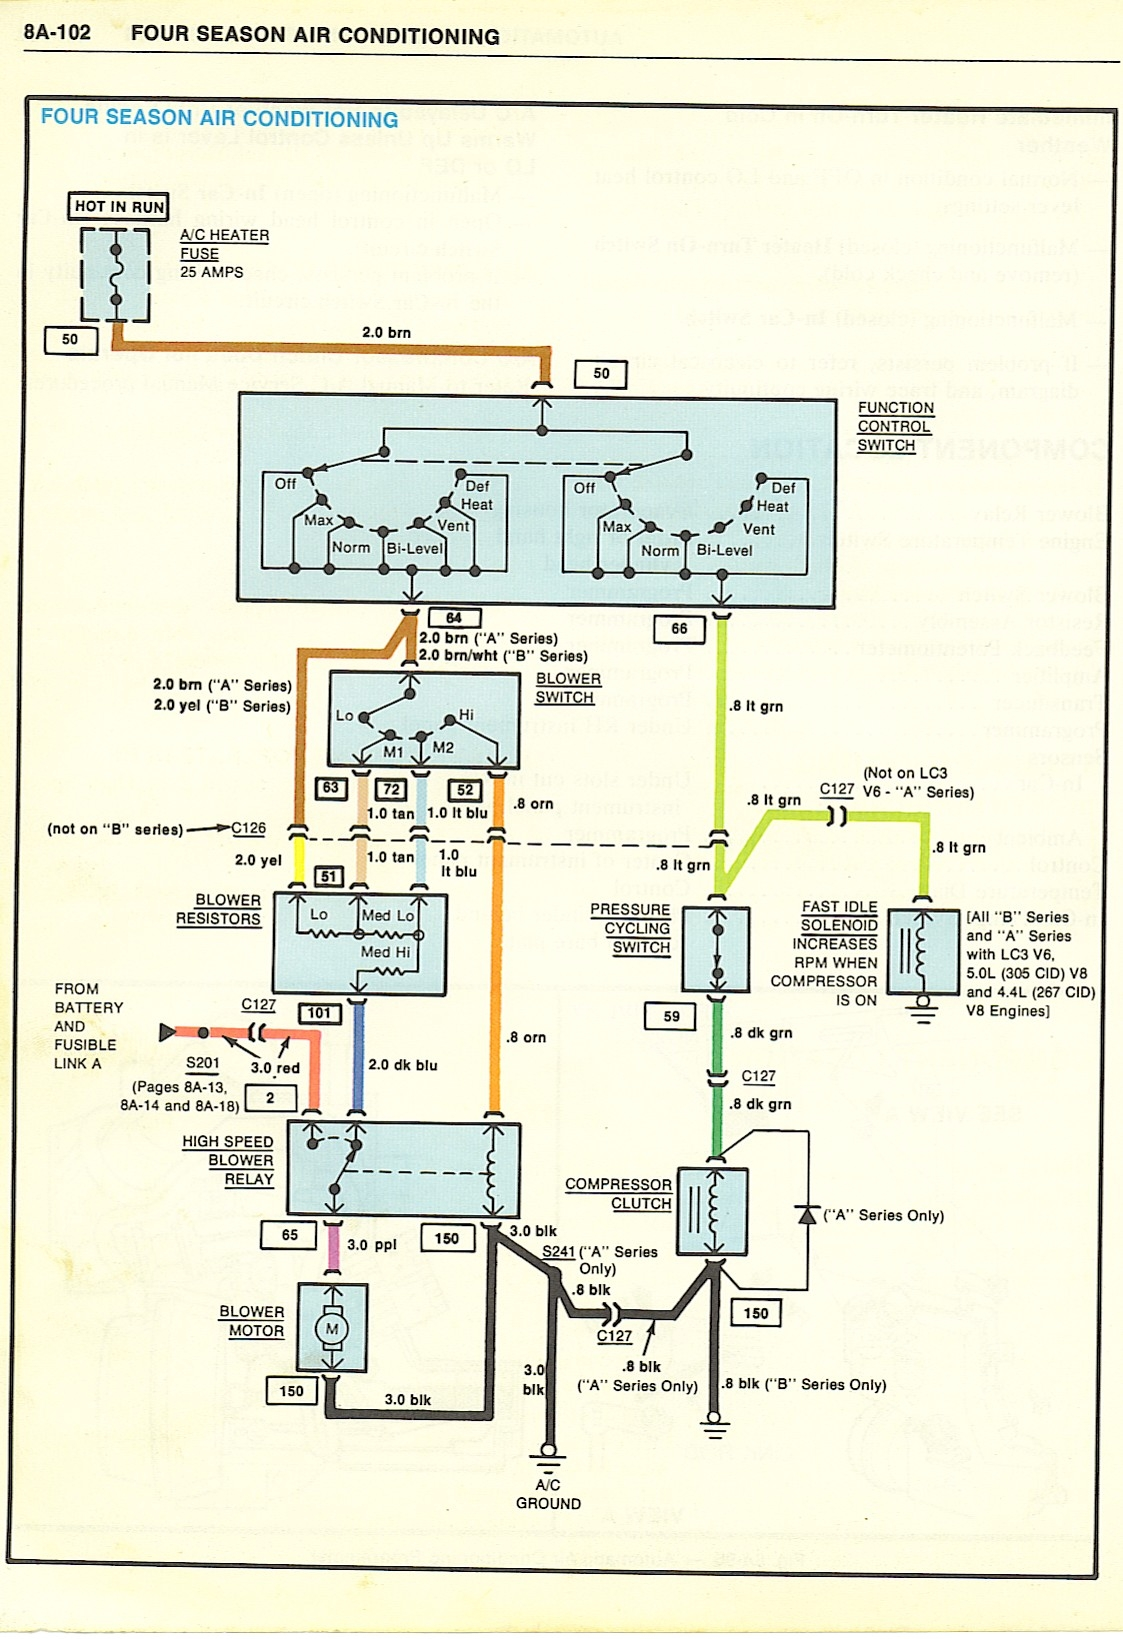 1968 FourSeasonAirConditioner chevy diagrams powerwizard 1 0 wiring diagram at aneh.co